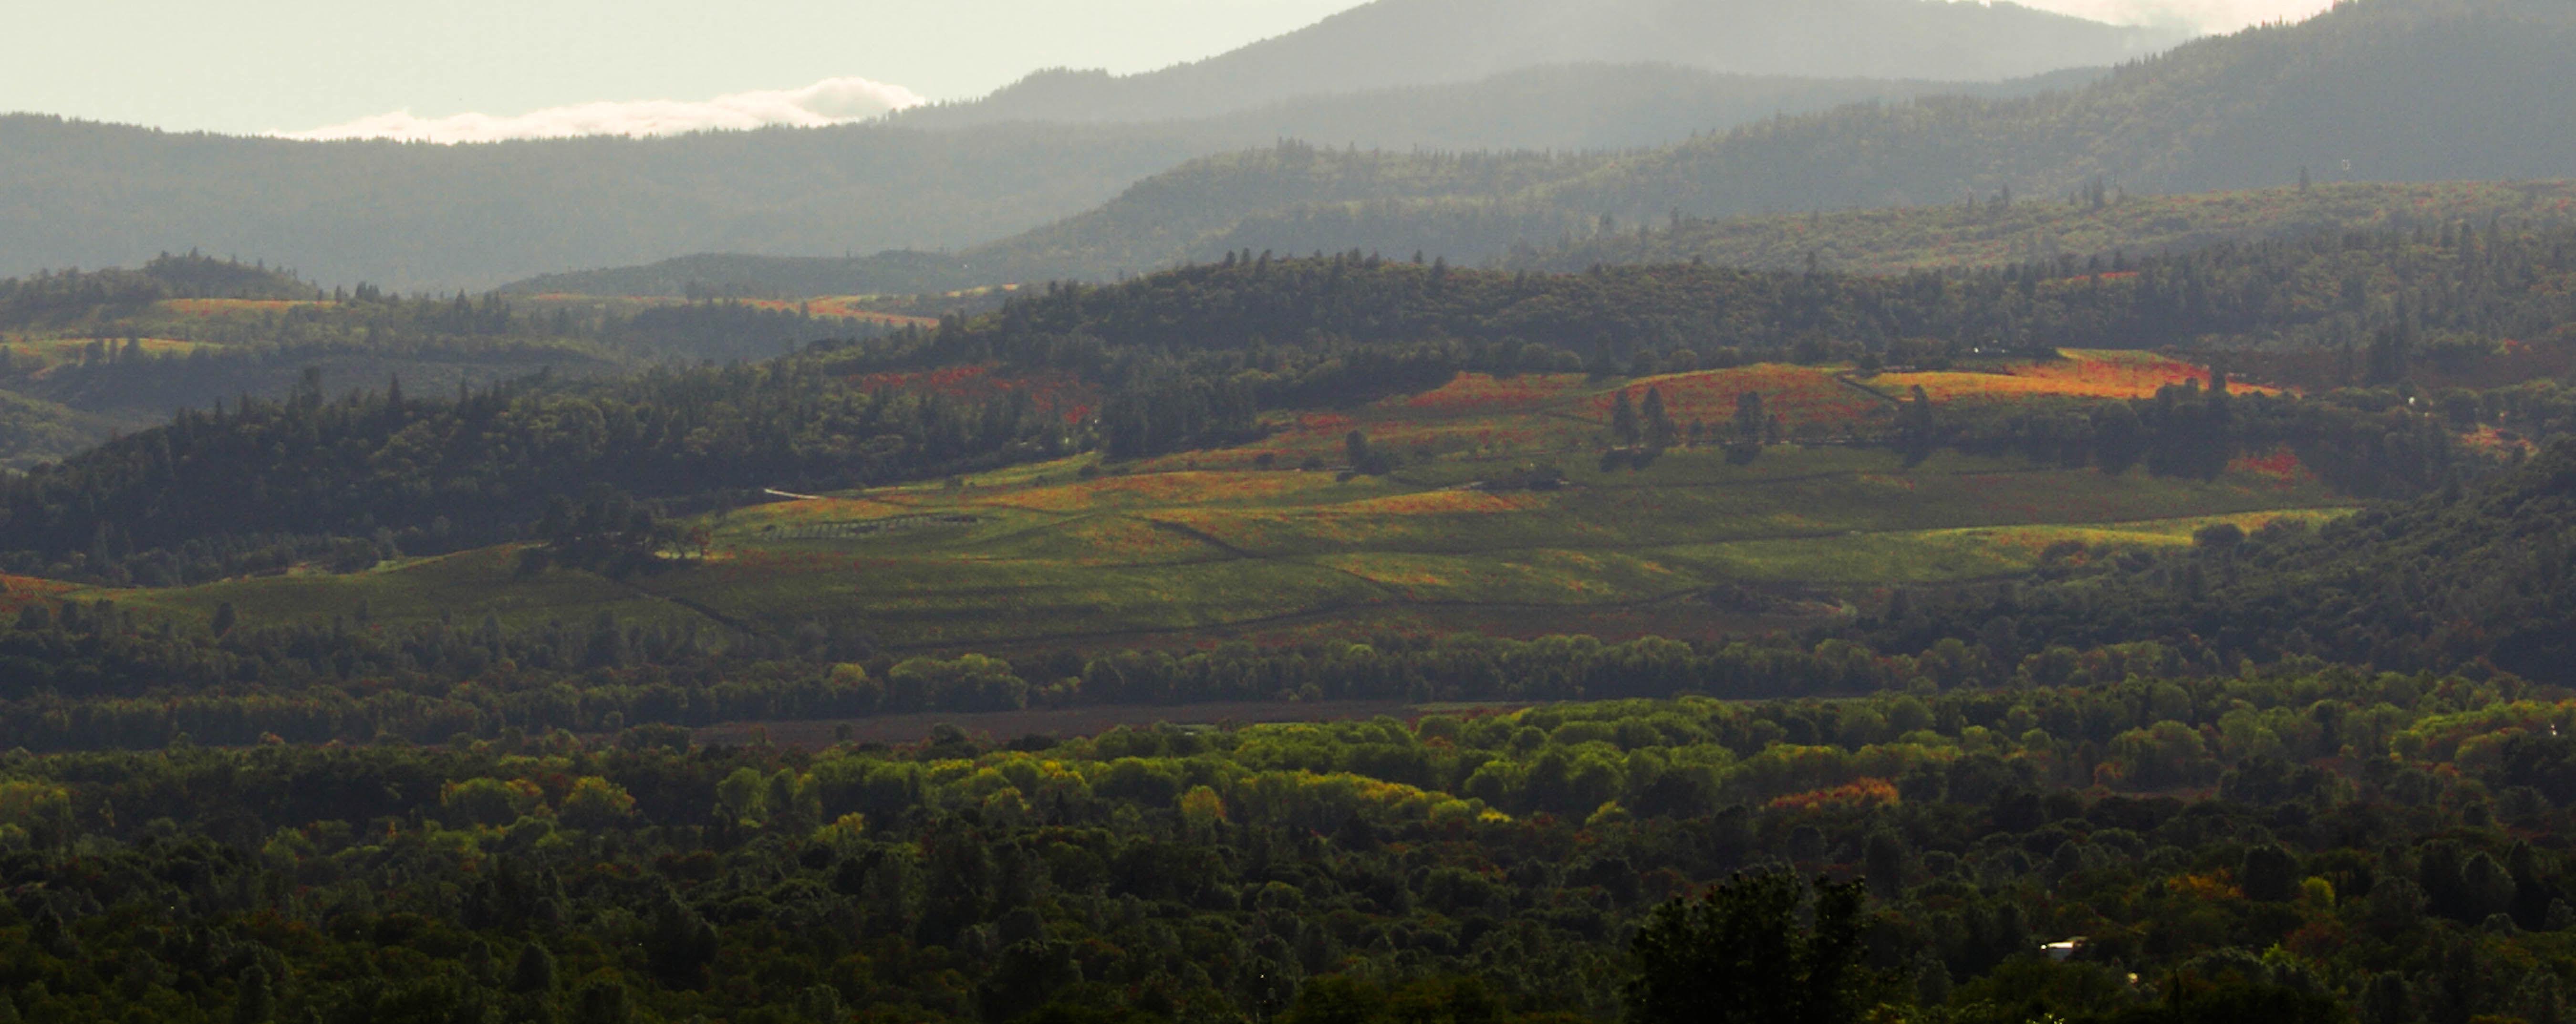 photo of mountains and vinyards in shades of green and yellow